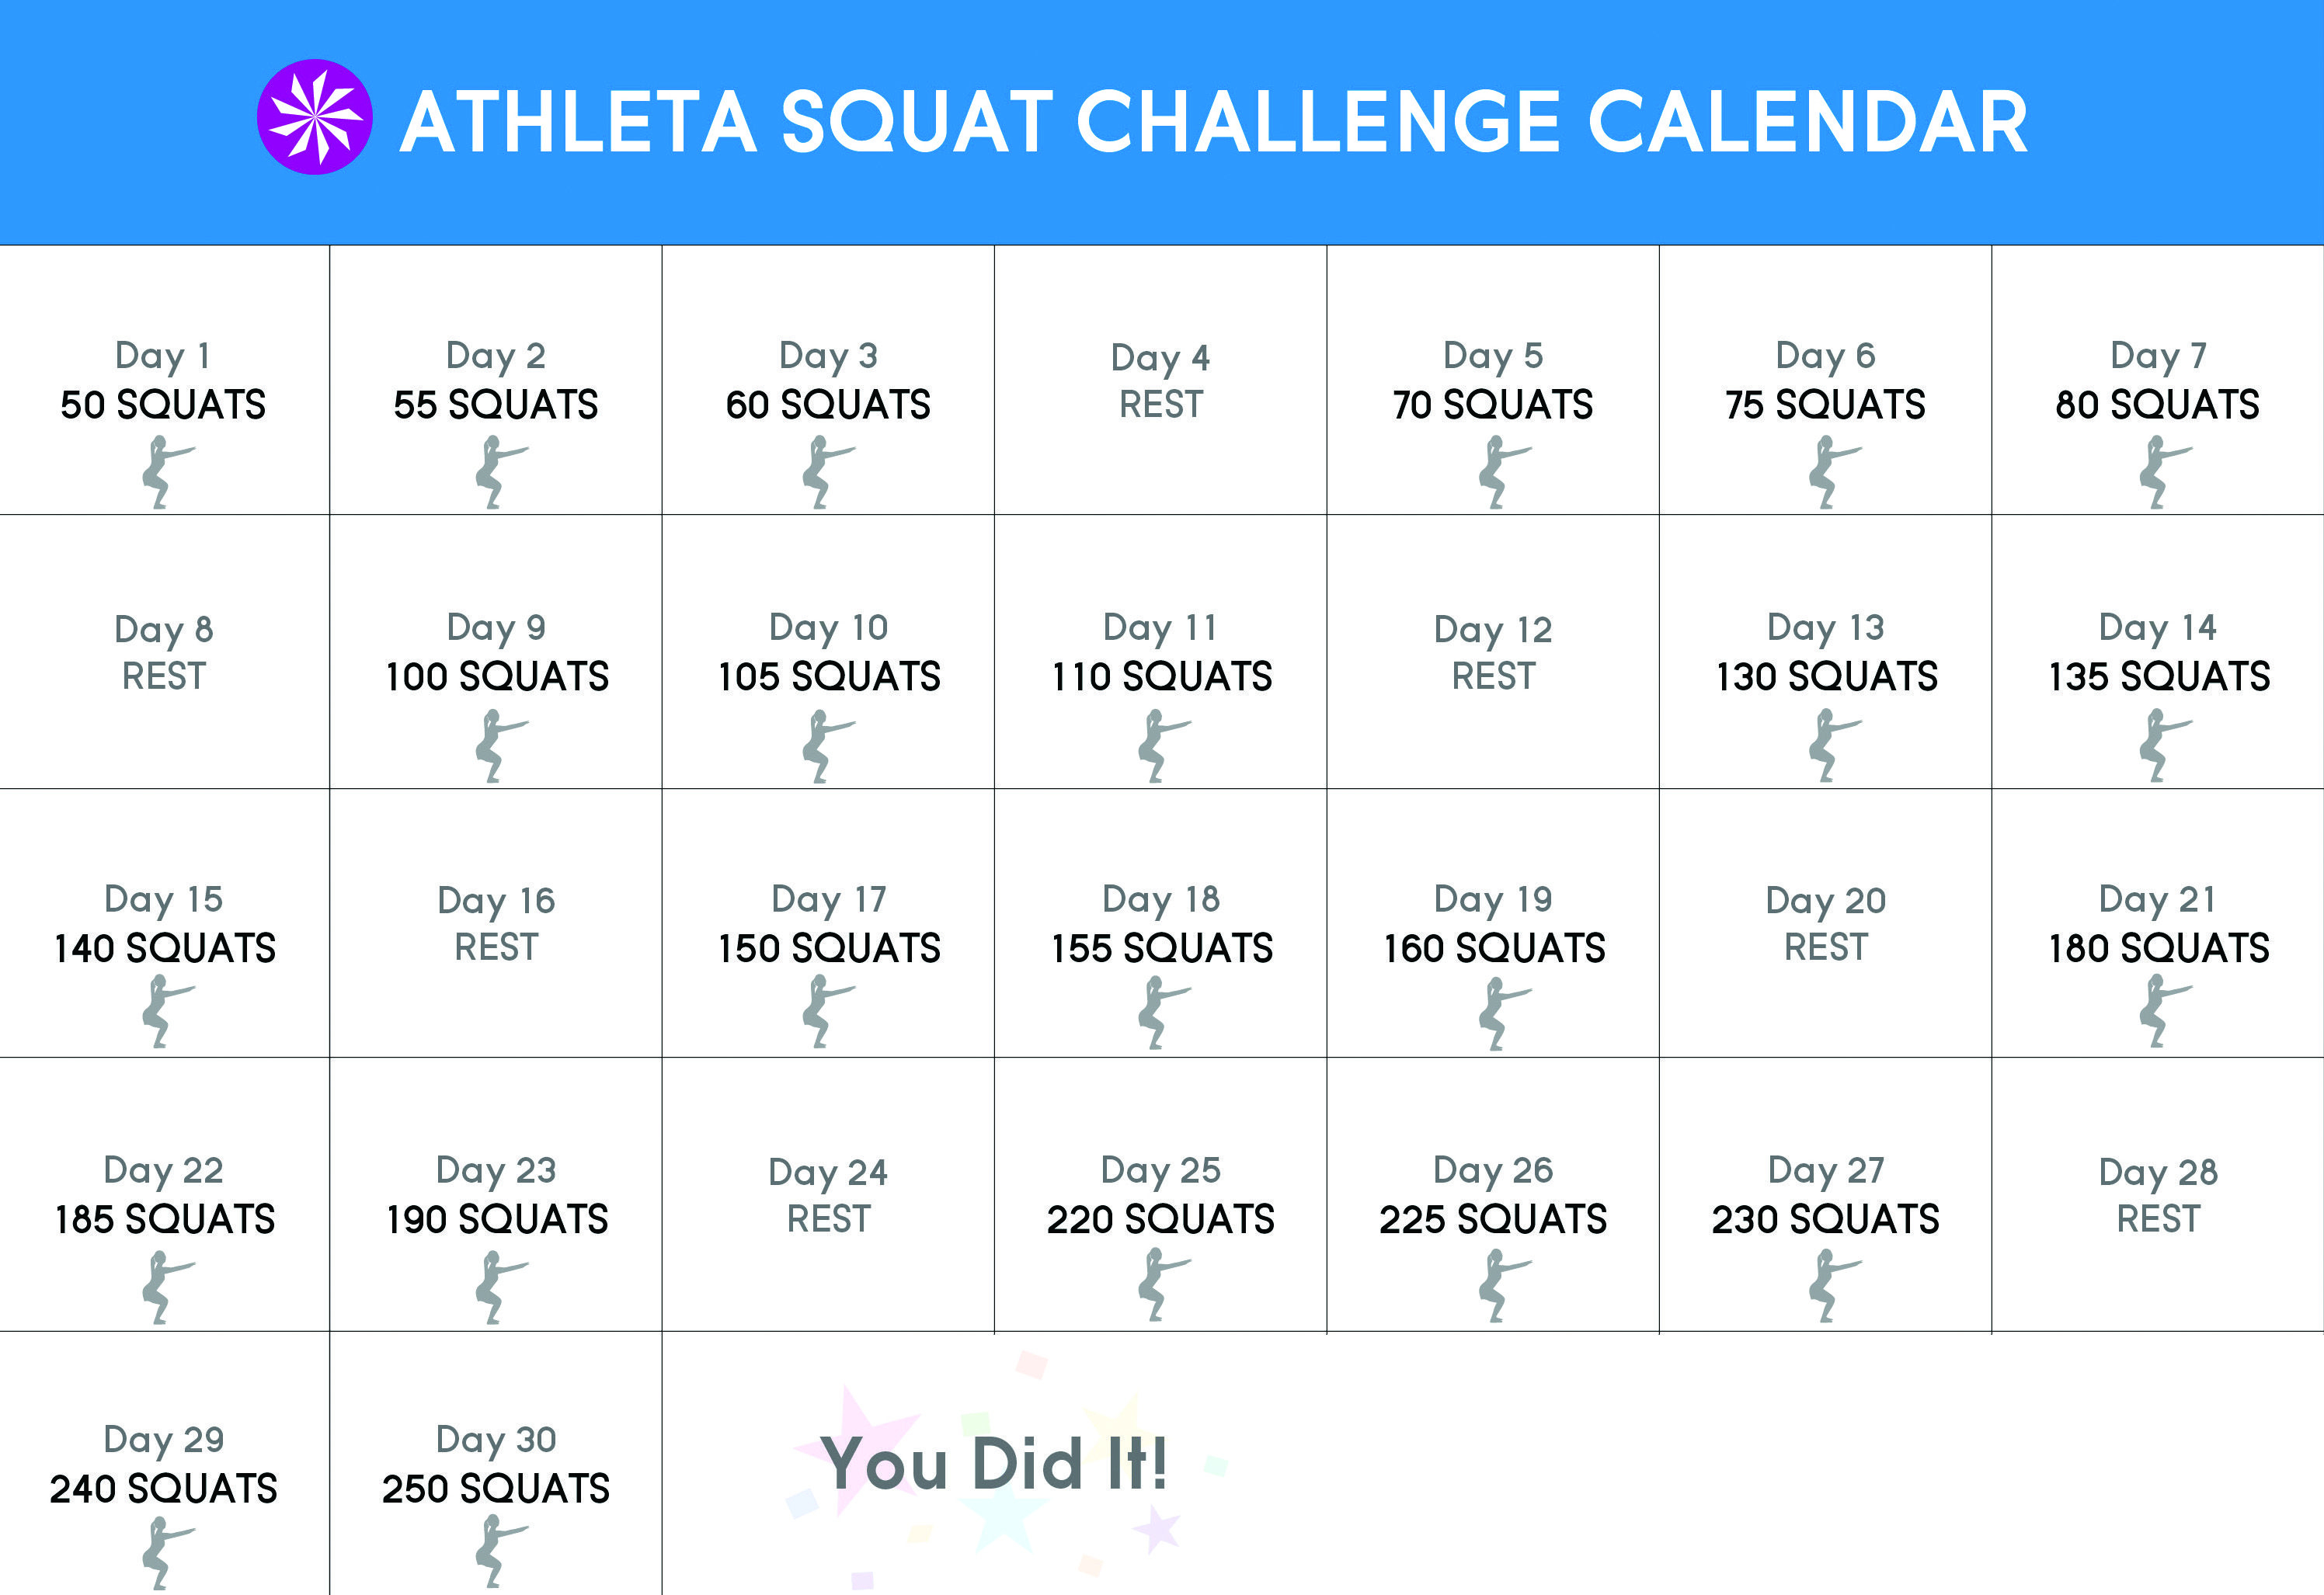 30 Day Squat Challenge Lets Get This Going! (From The Blog Regarding 30 Day Squat Challenge Calendar